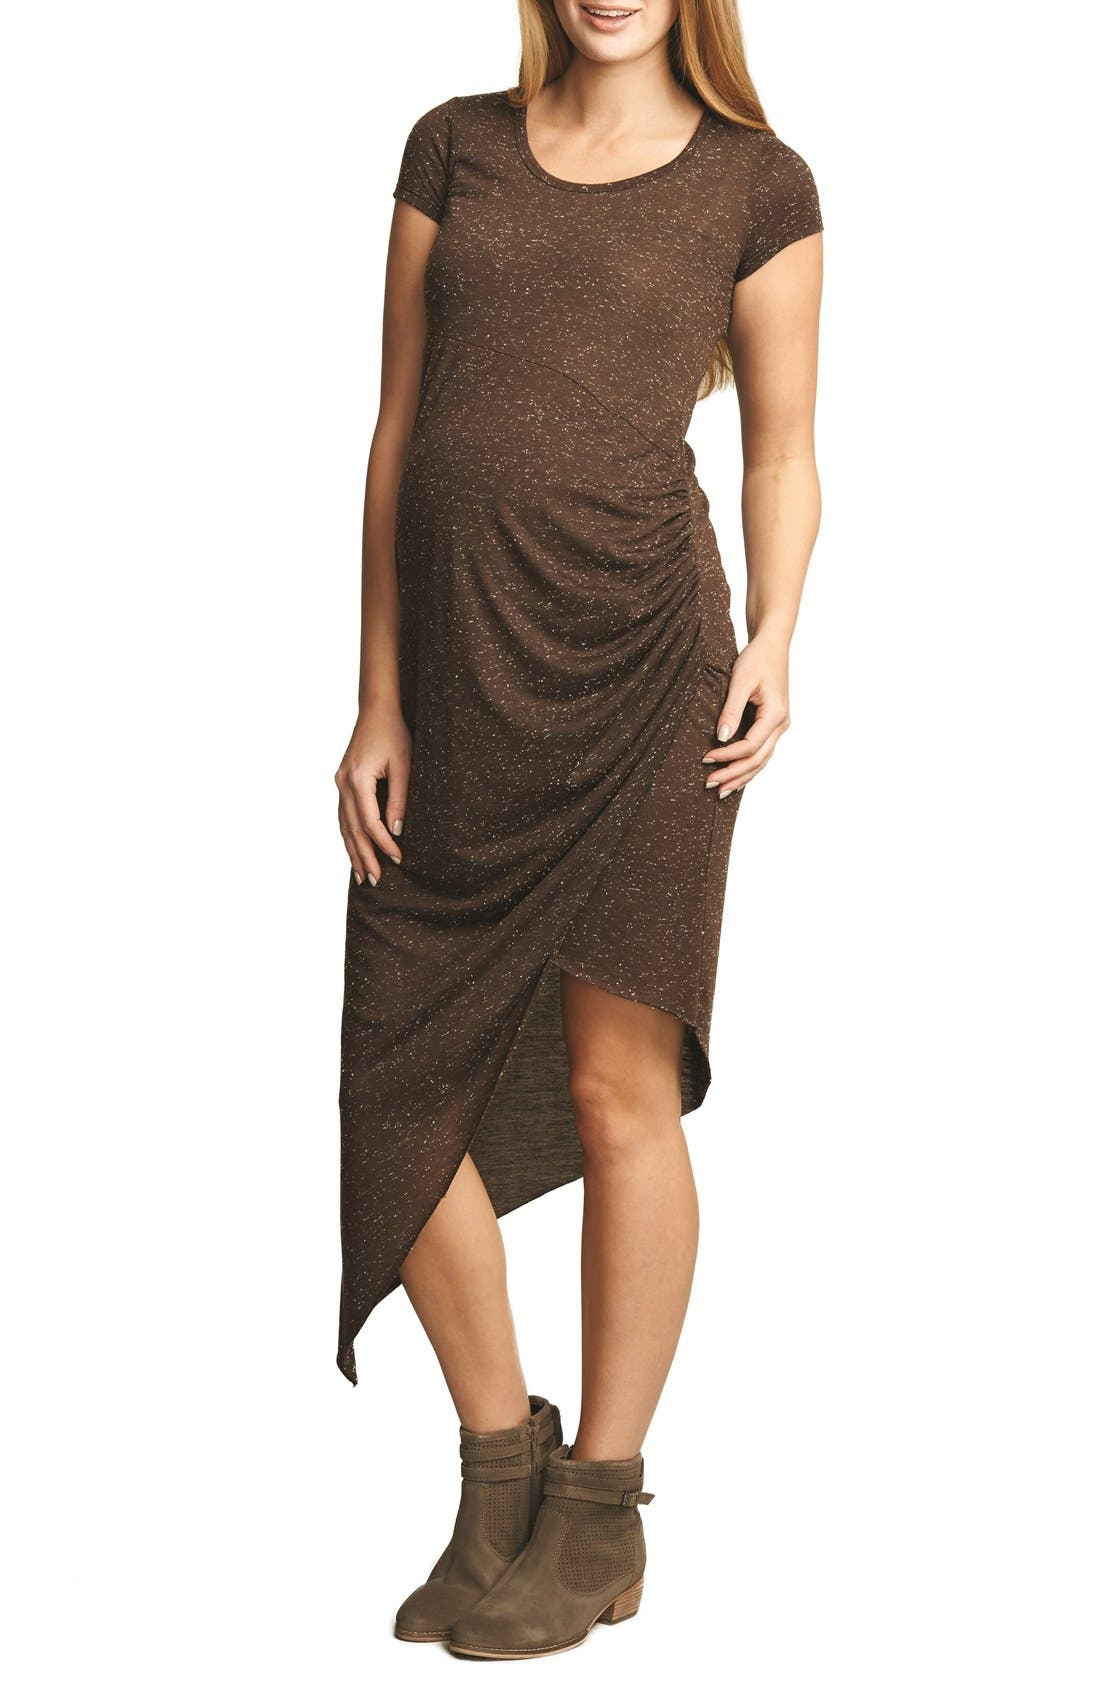 The Urban Ma Draped Maternity Dress